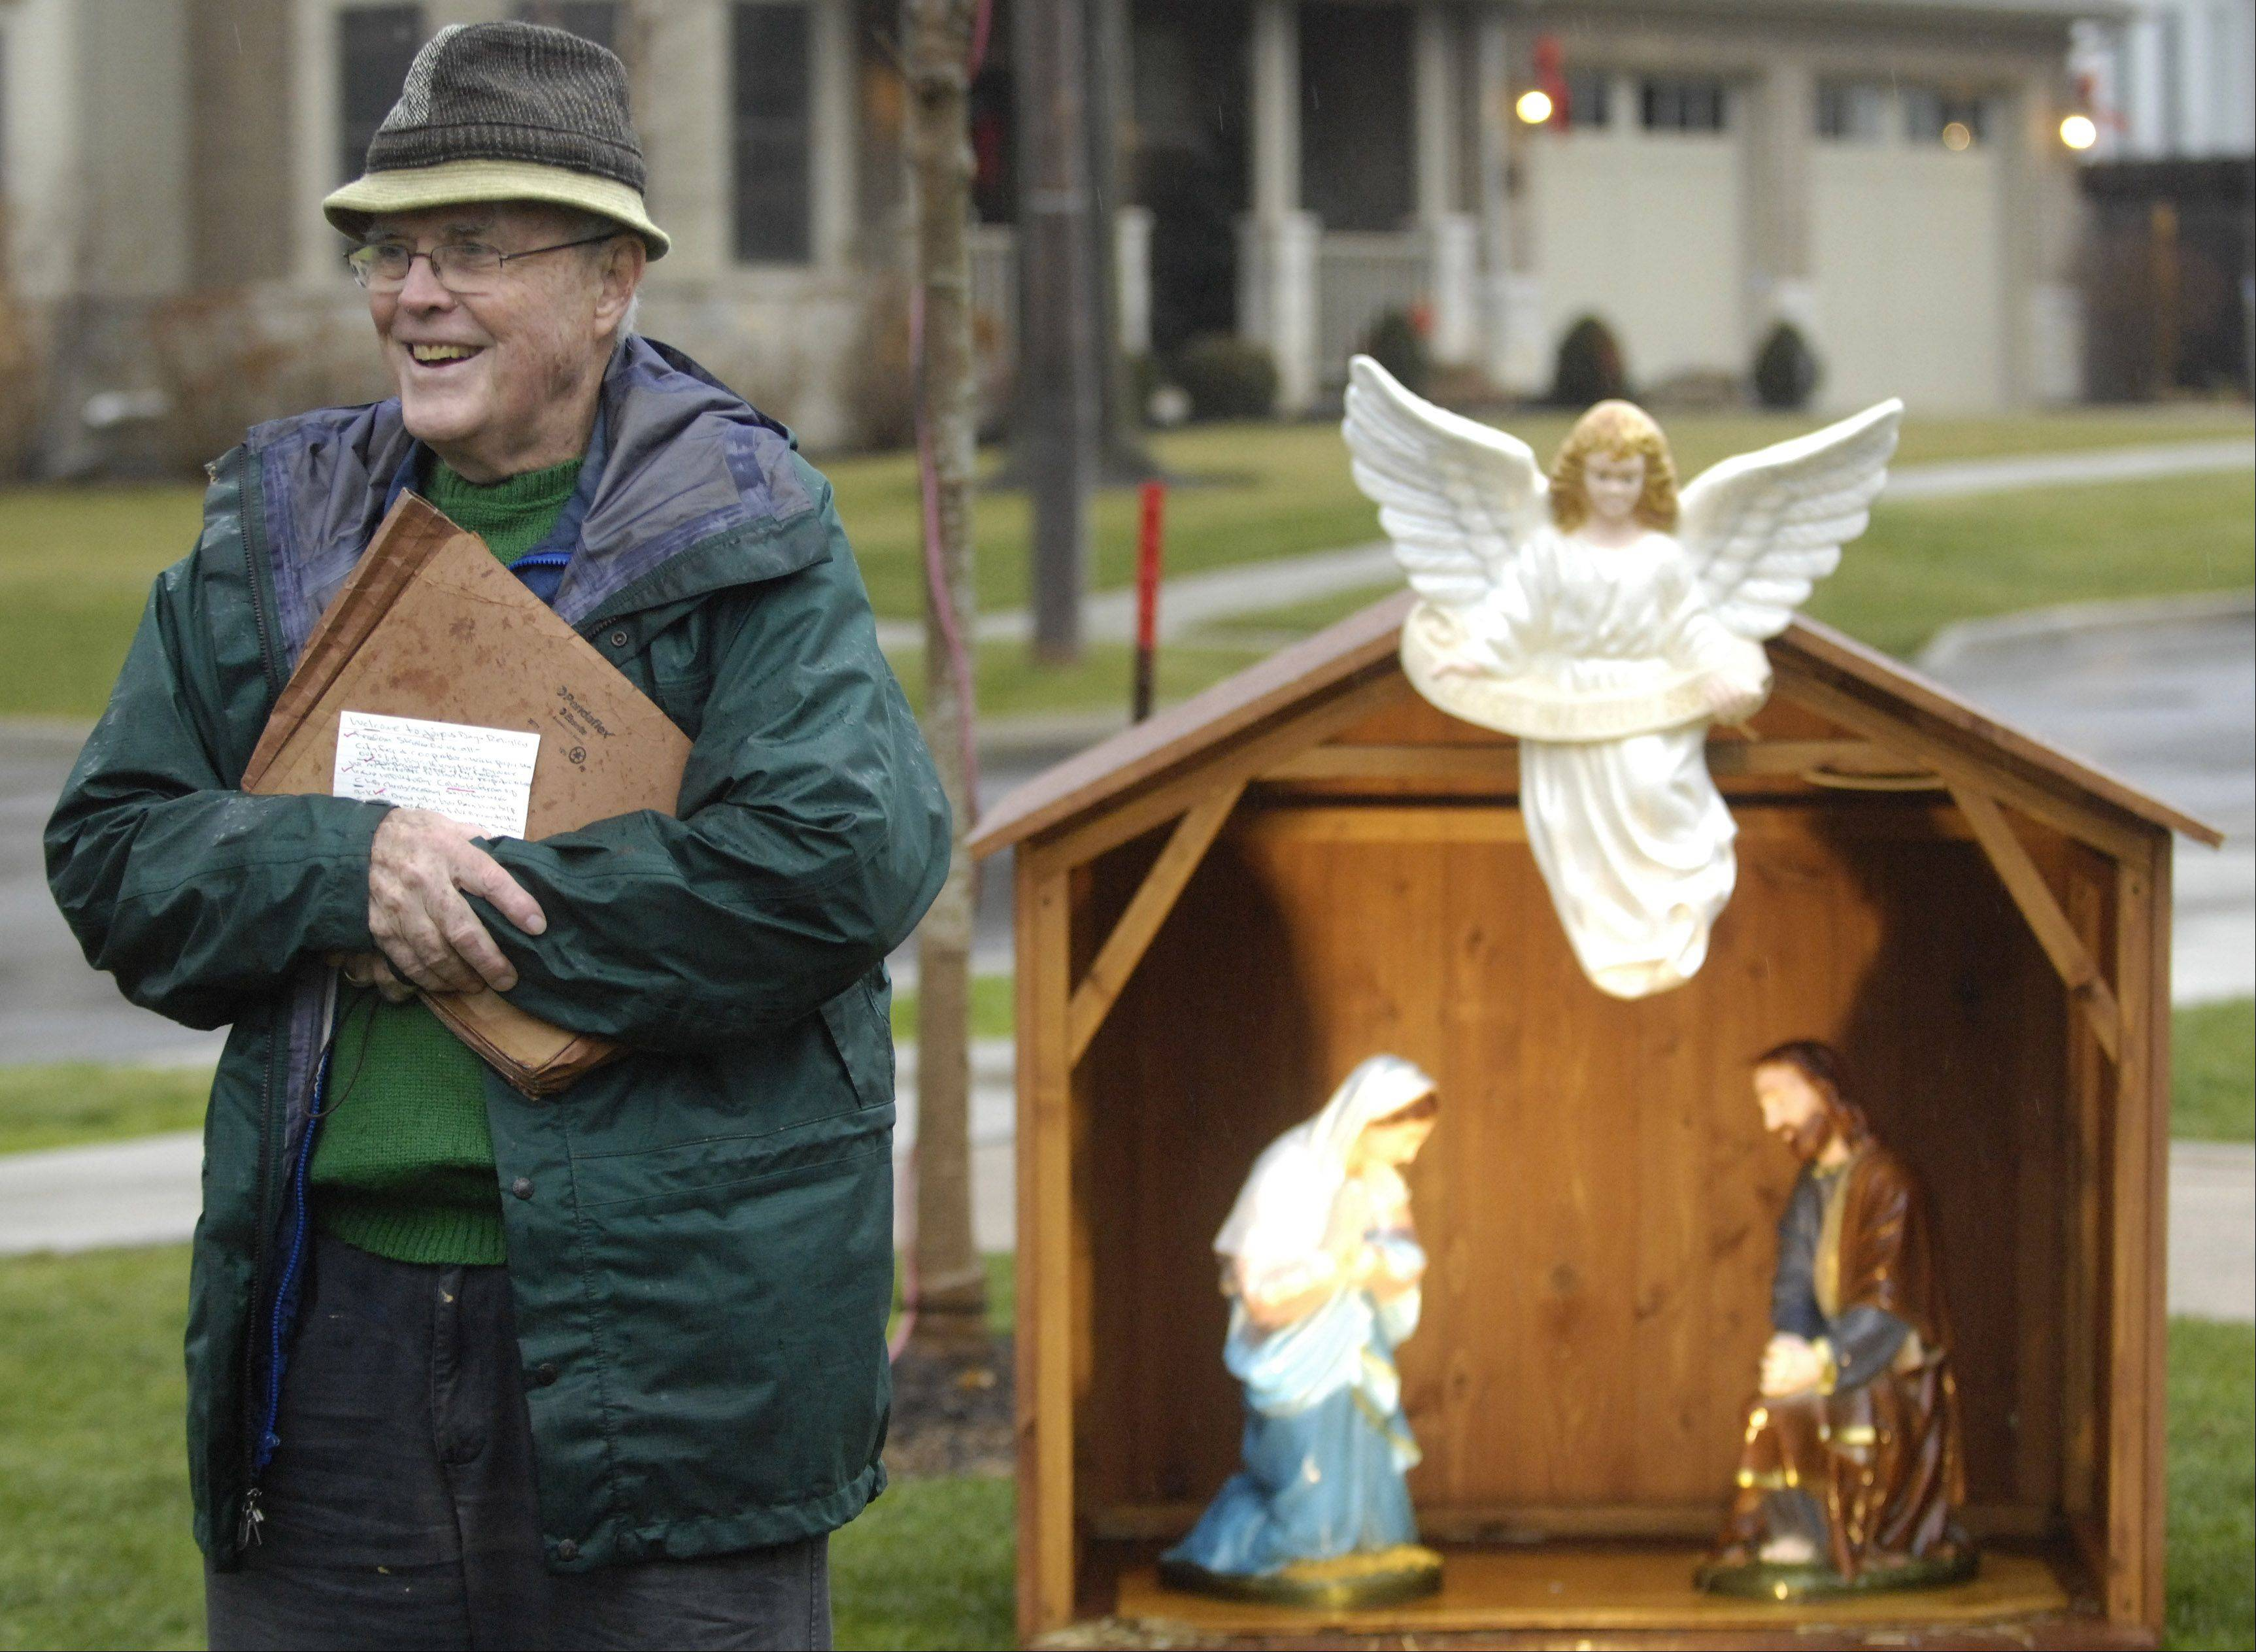 Jim Finnegan, director of the Illinois Nativity Scene Committee, speaks while standing in front of the Nativity scene added Saturday to the holiday lights displays at North School Park in Arlington Heights.